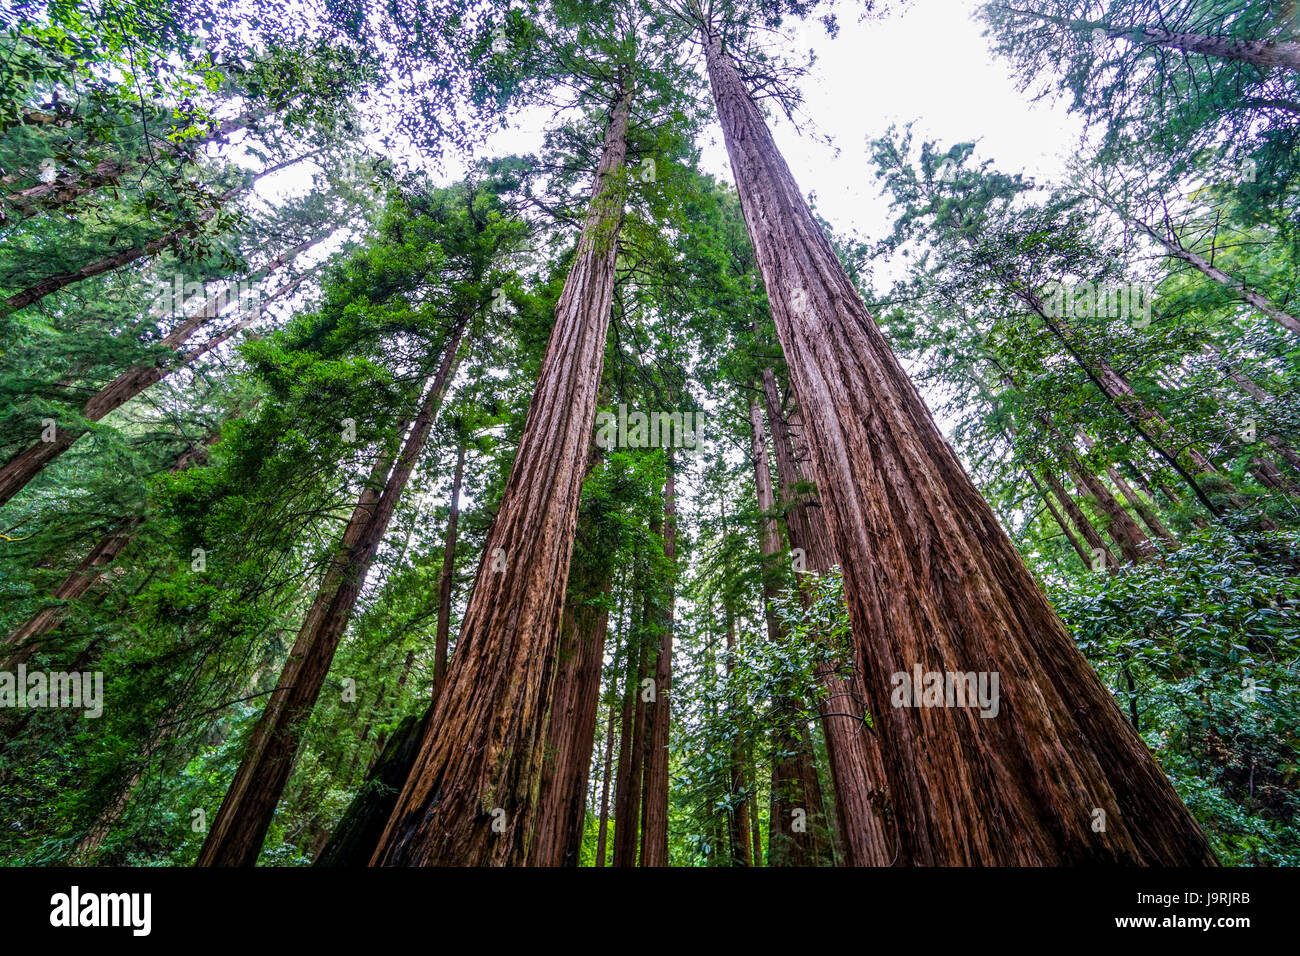 The giant trees of the Redwood Forest - Stock Image